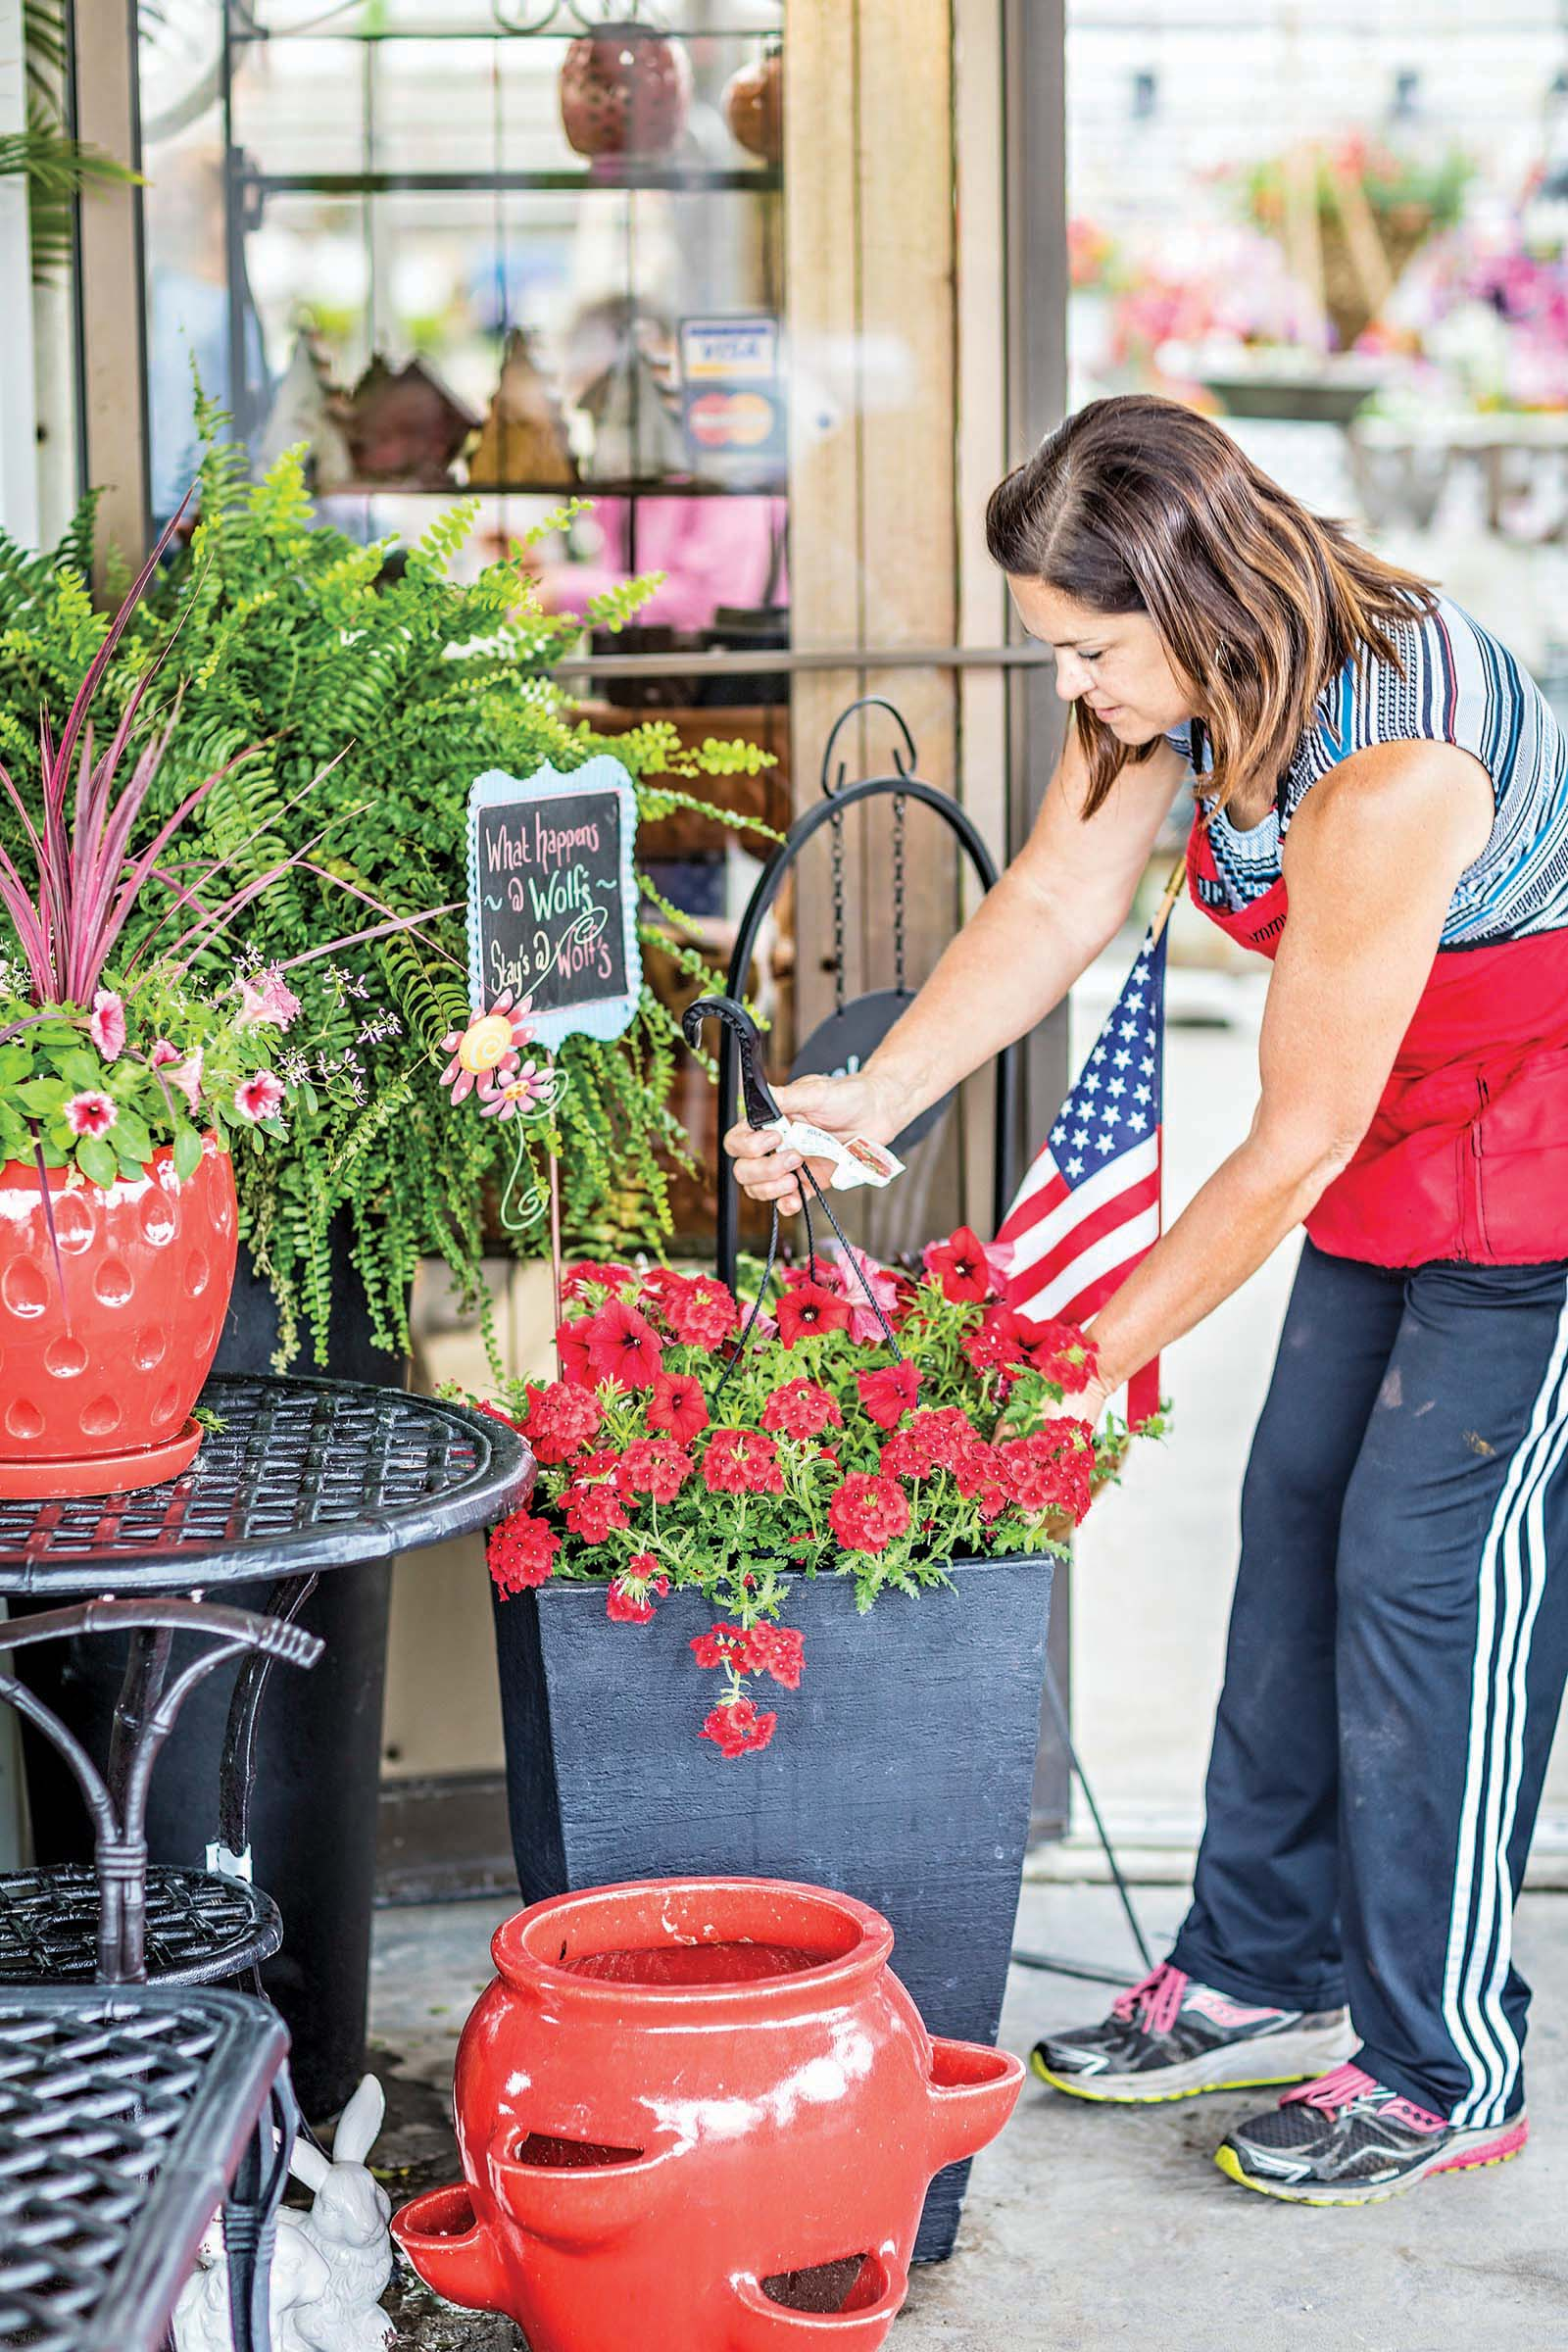 Tammy Faykosh, Head Gardener, Wolf's Blooms Berries photographed Thursday, May 25, 2017 in Bowling Green, Ohio works on organizing some Memorial Day arrangements at the greenhouse. (© James D. DeCamp | http://JamesDeCamp.com | 614-367-6366)